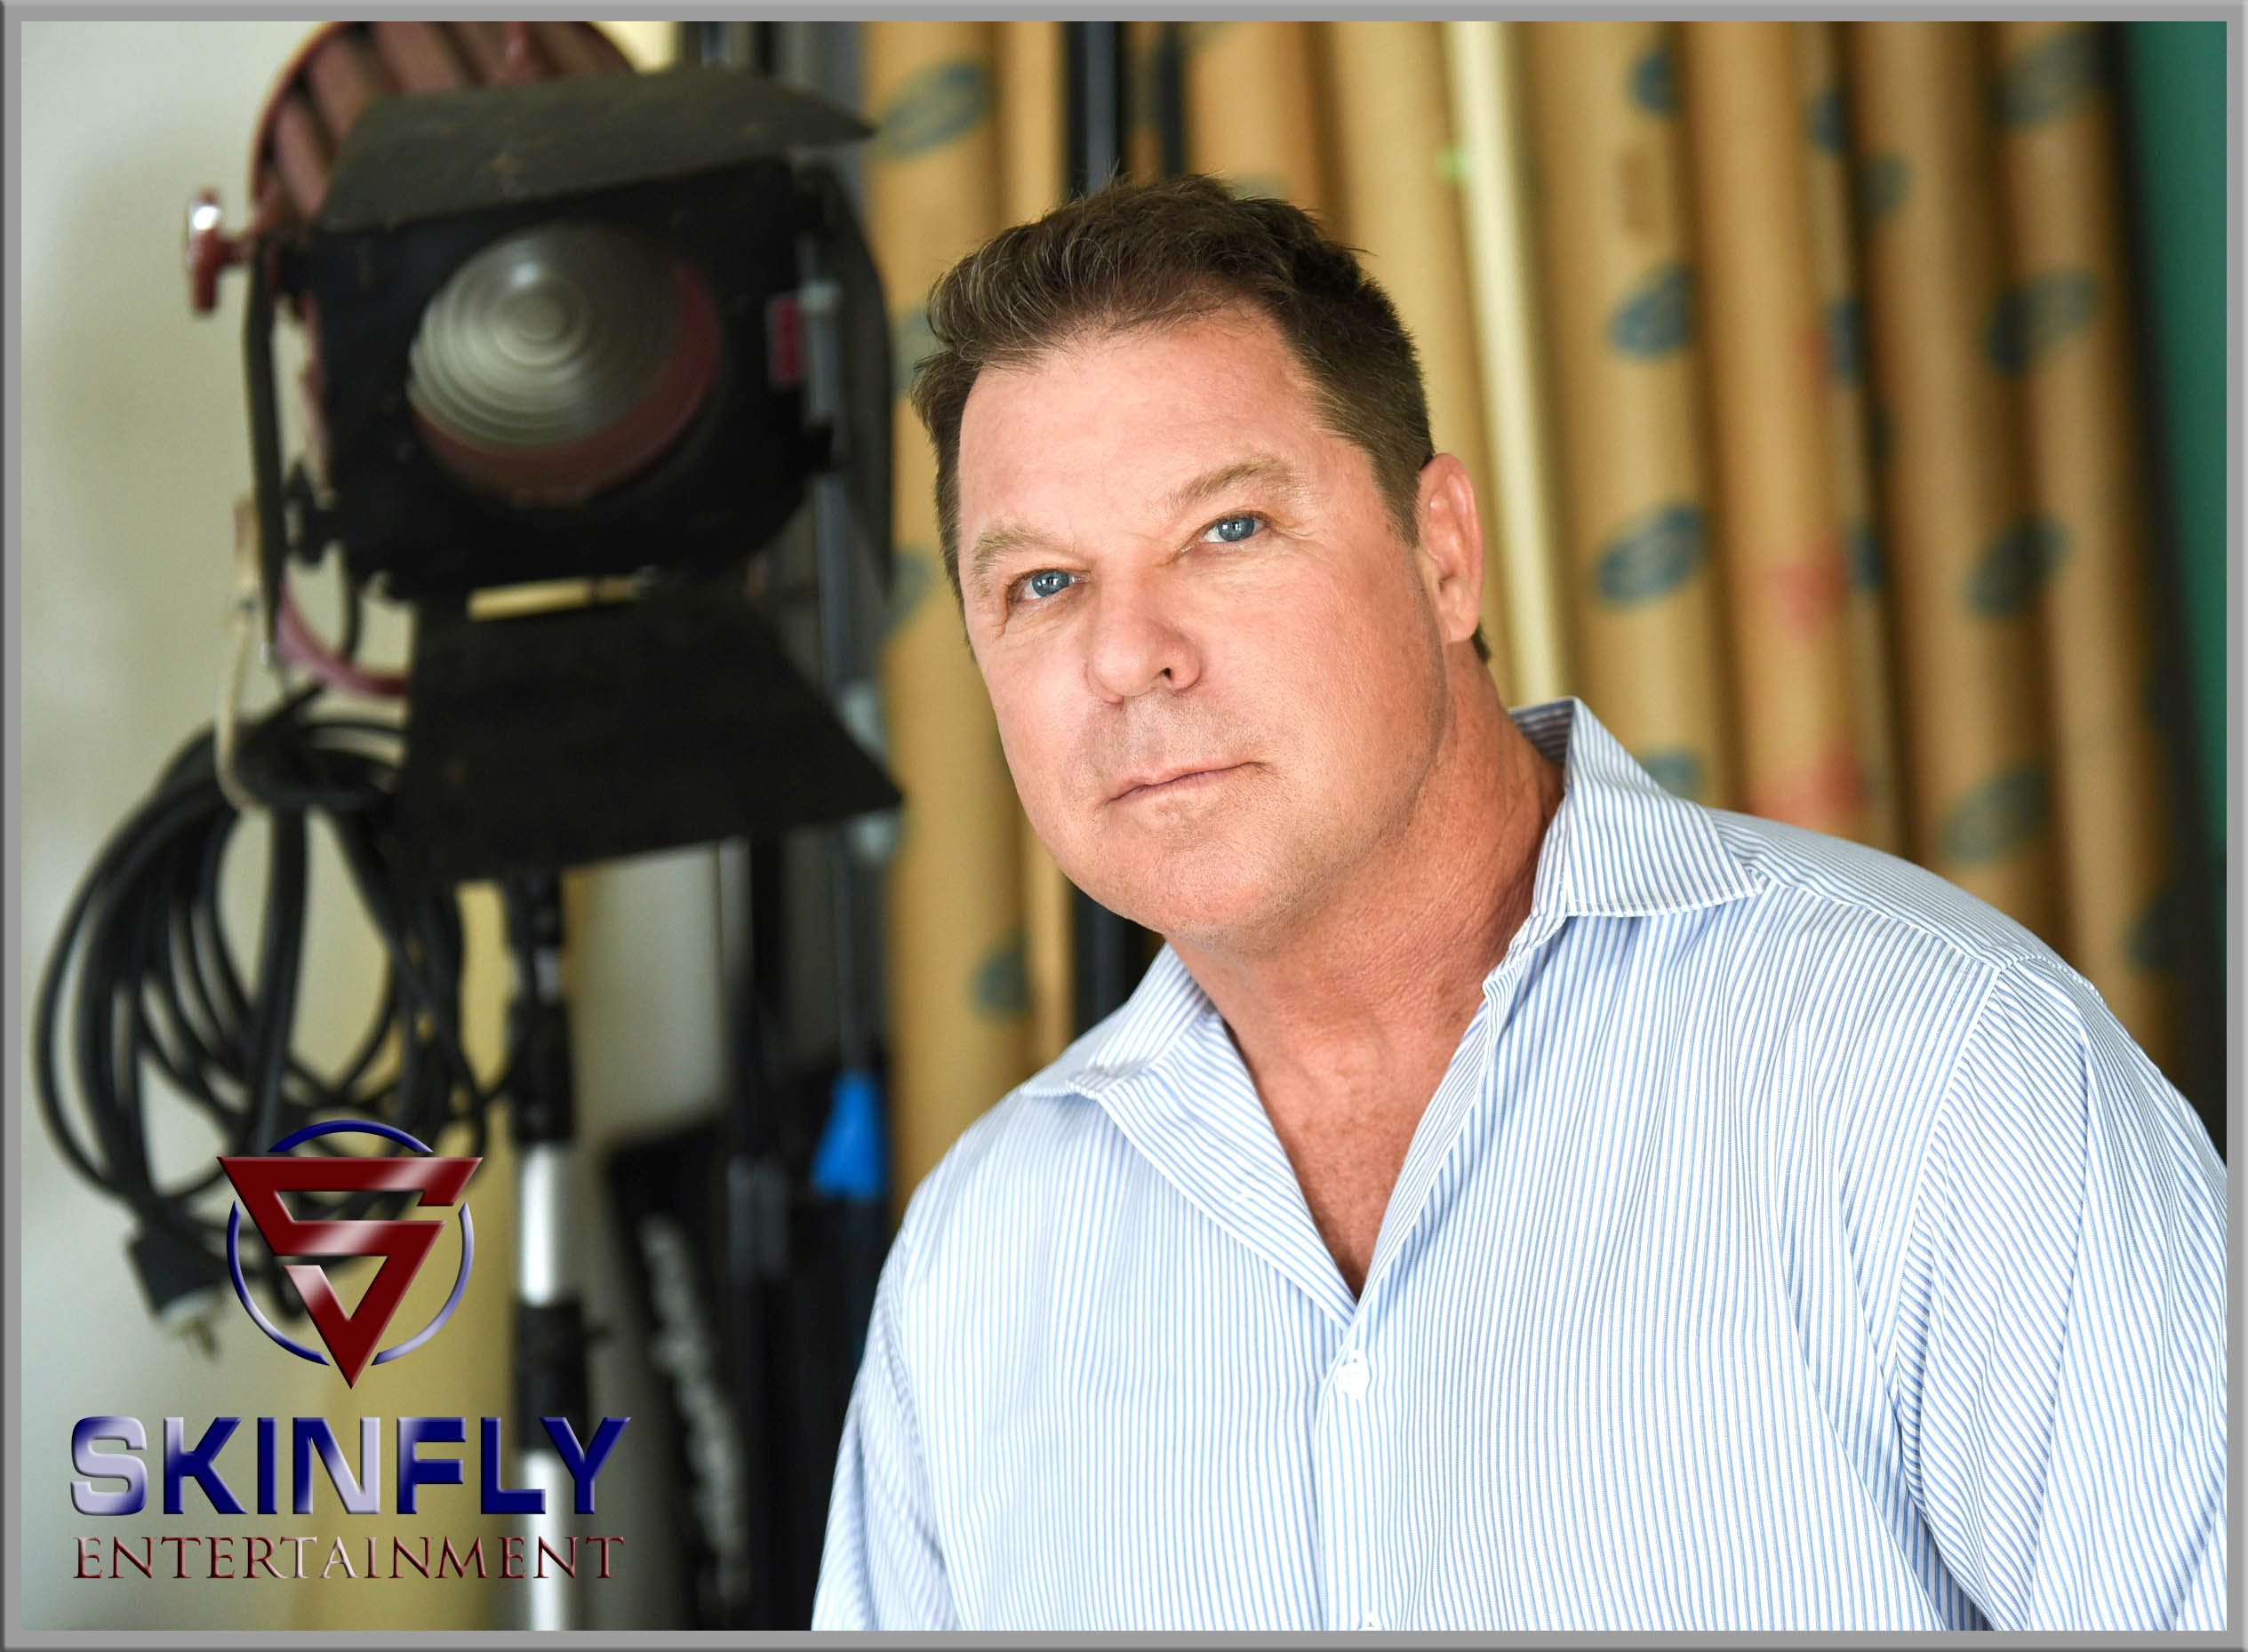 Lyle Howry, CEO of Skinfly Entertainment